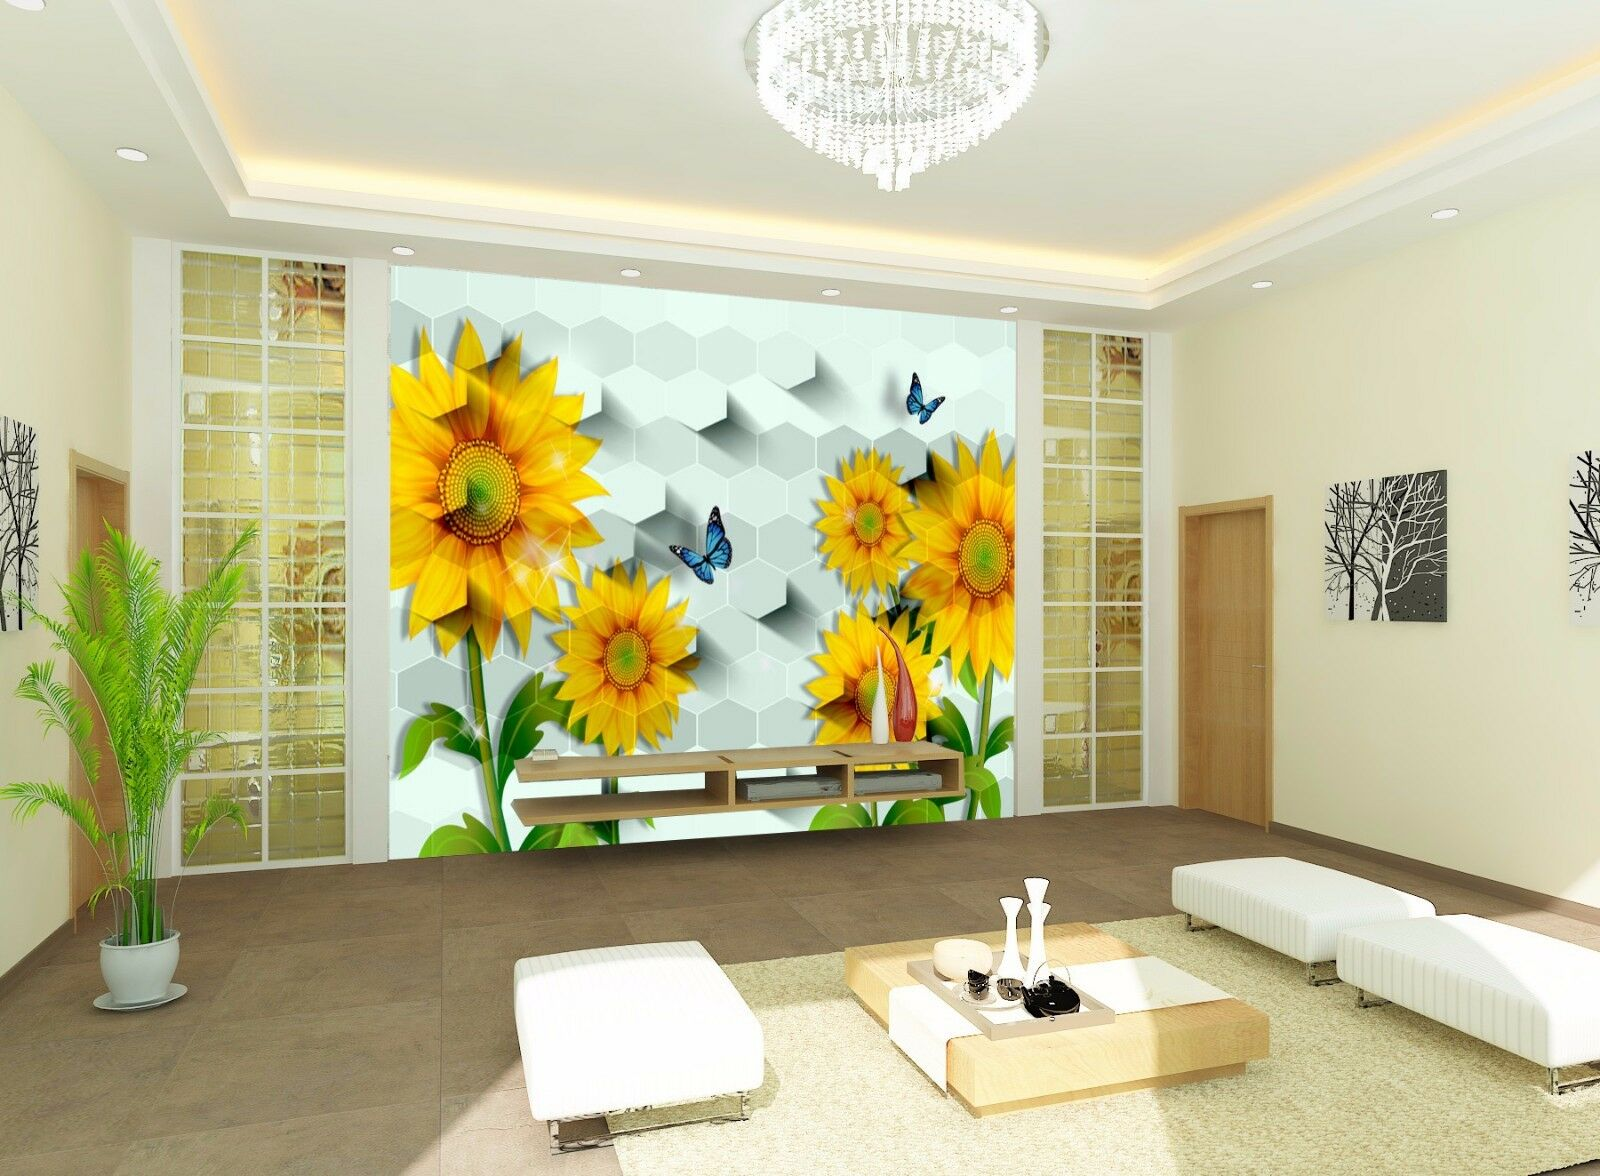 3D Gelb sunflower 44 Wall Paper Print Wall Decal Deco Indoor Wall Murals